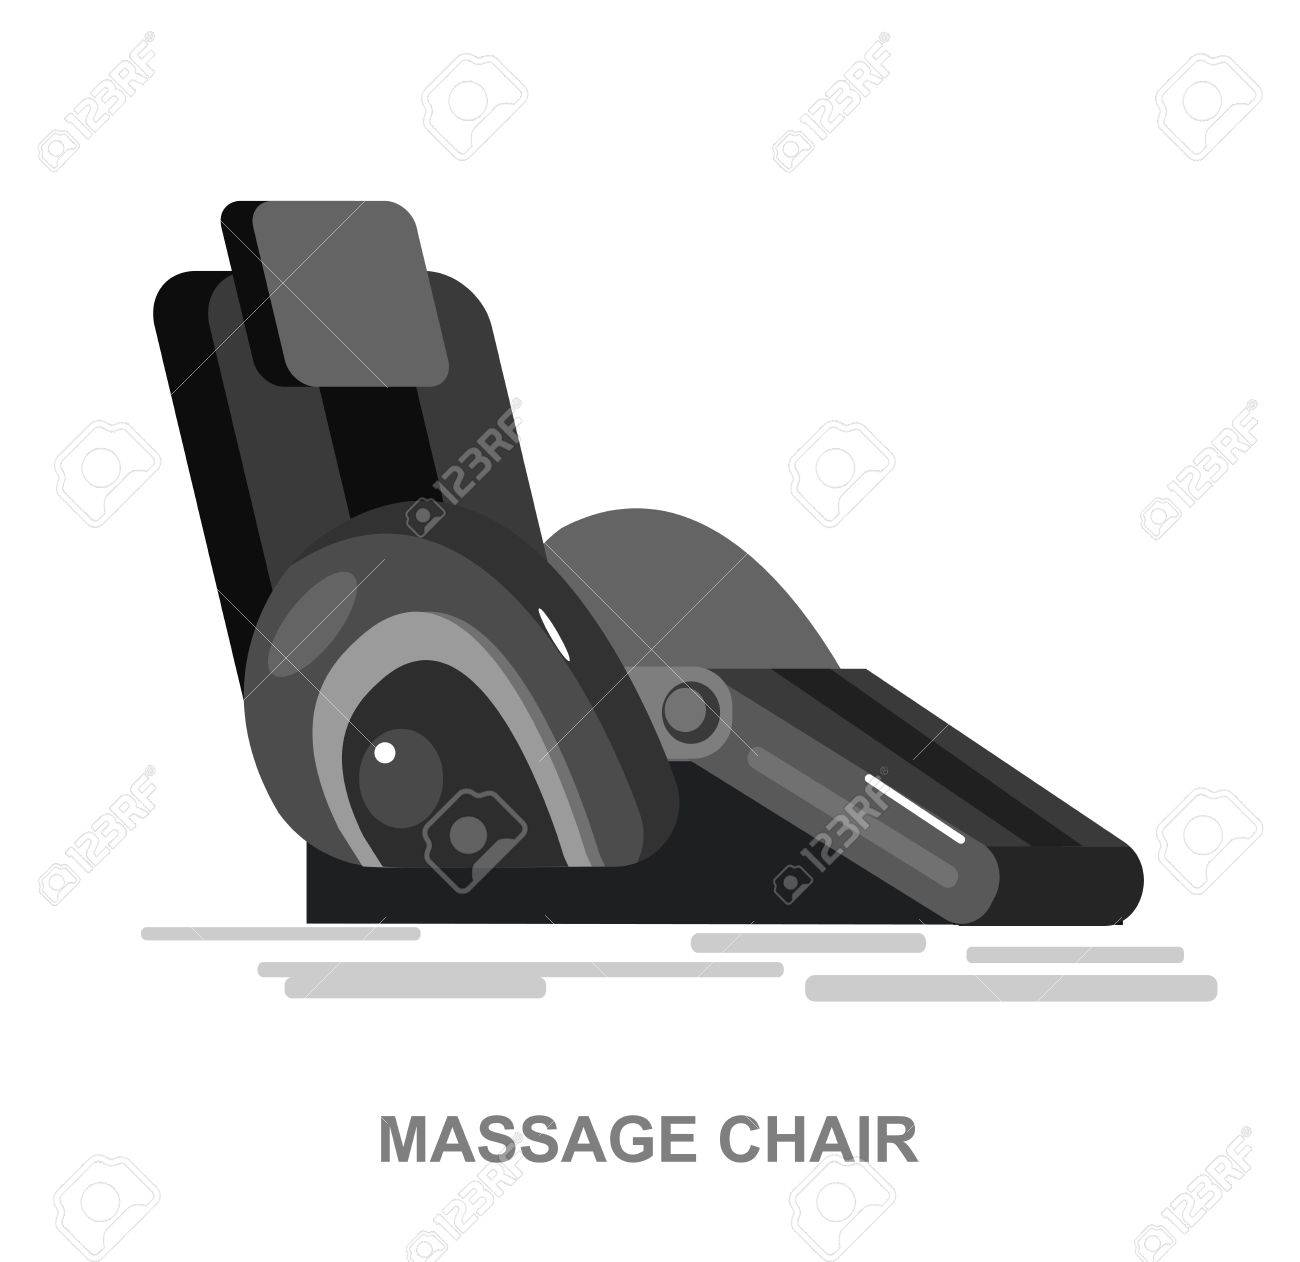 Vector detailed massage chair, massager for relax, cool flat illustration isolated on white background. - 56240402